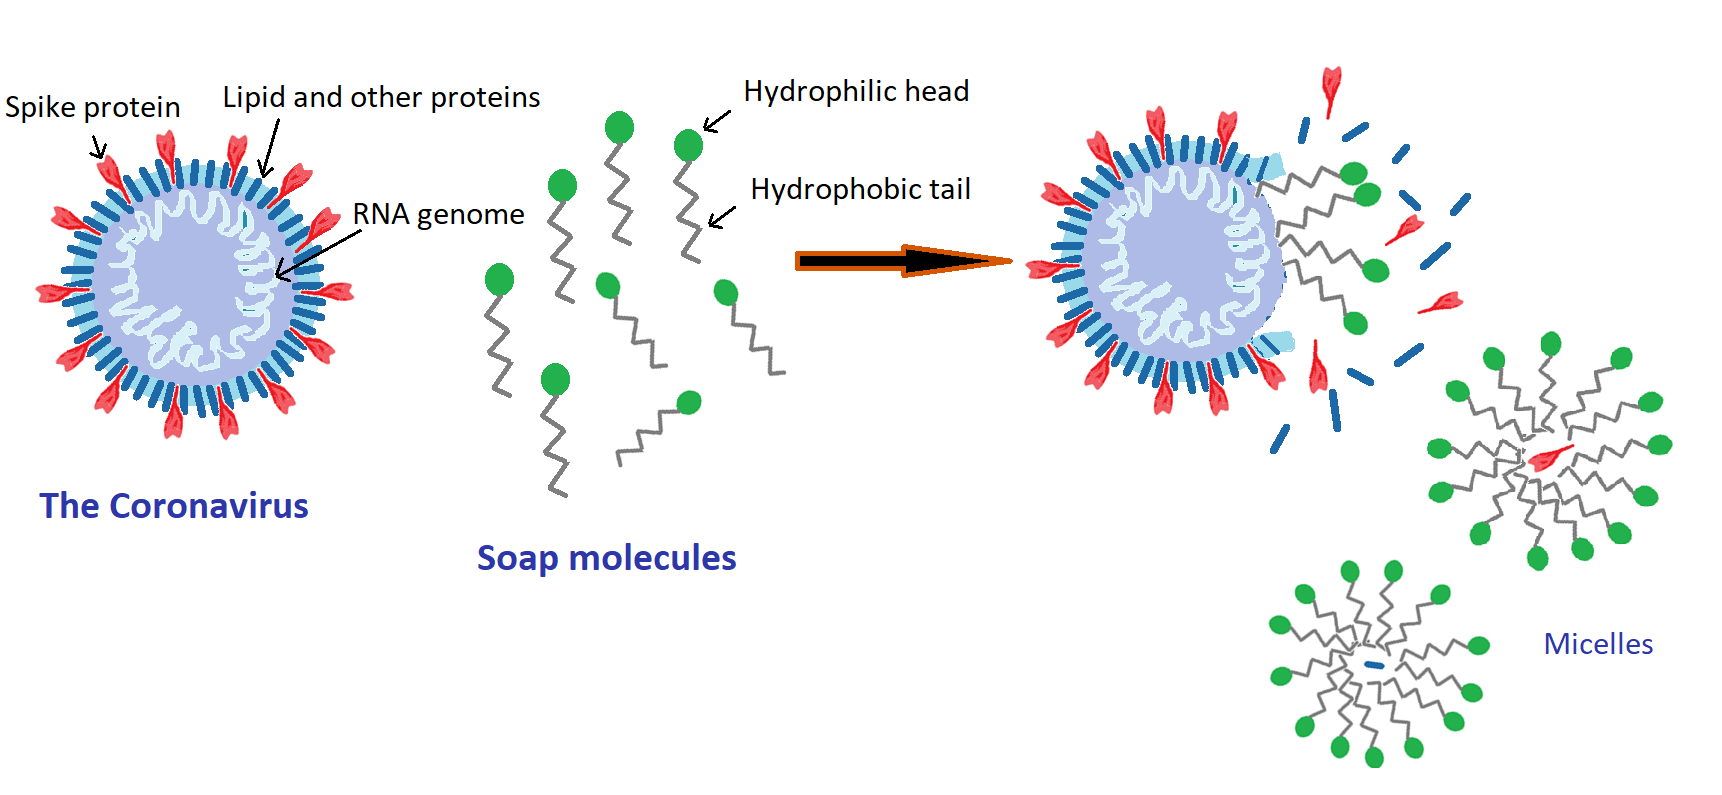 Micelle deativication of virus